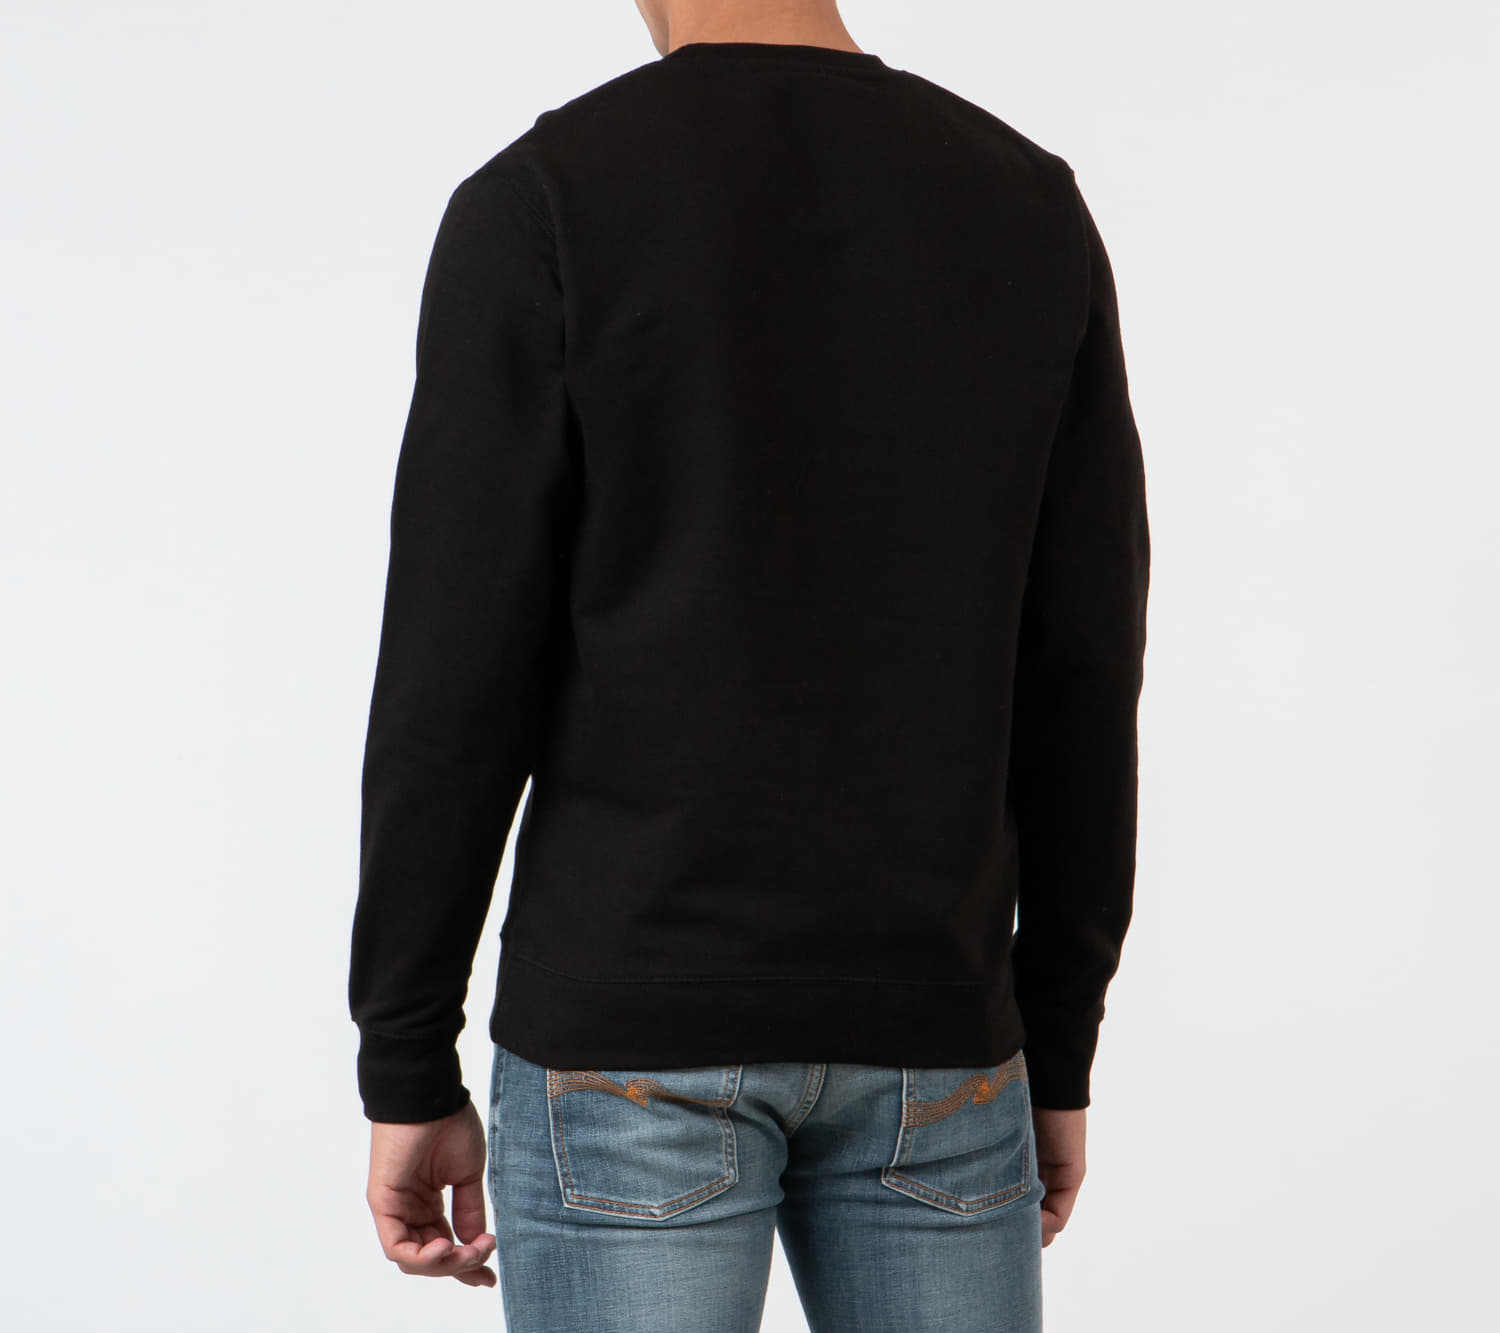 RAP Crewneck Black